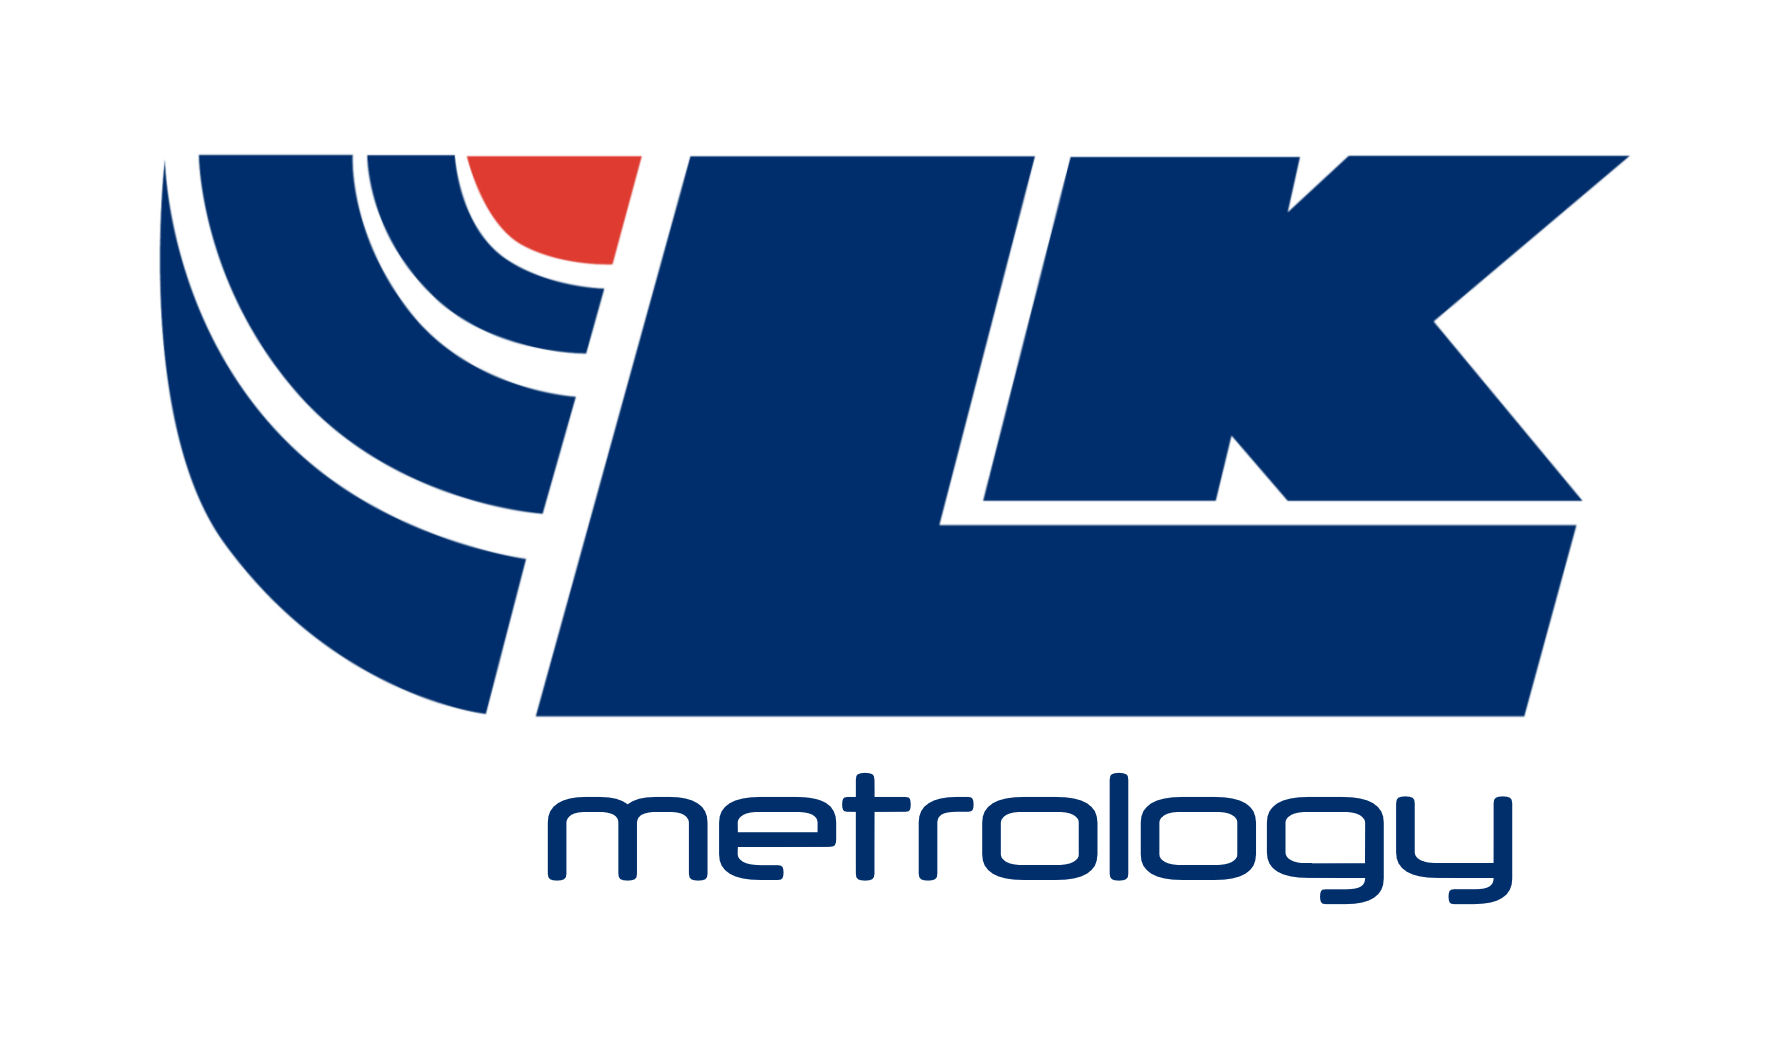 LK Metrology logo